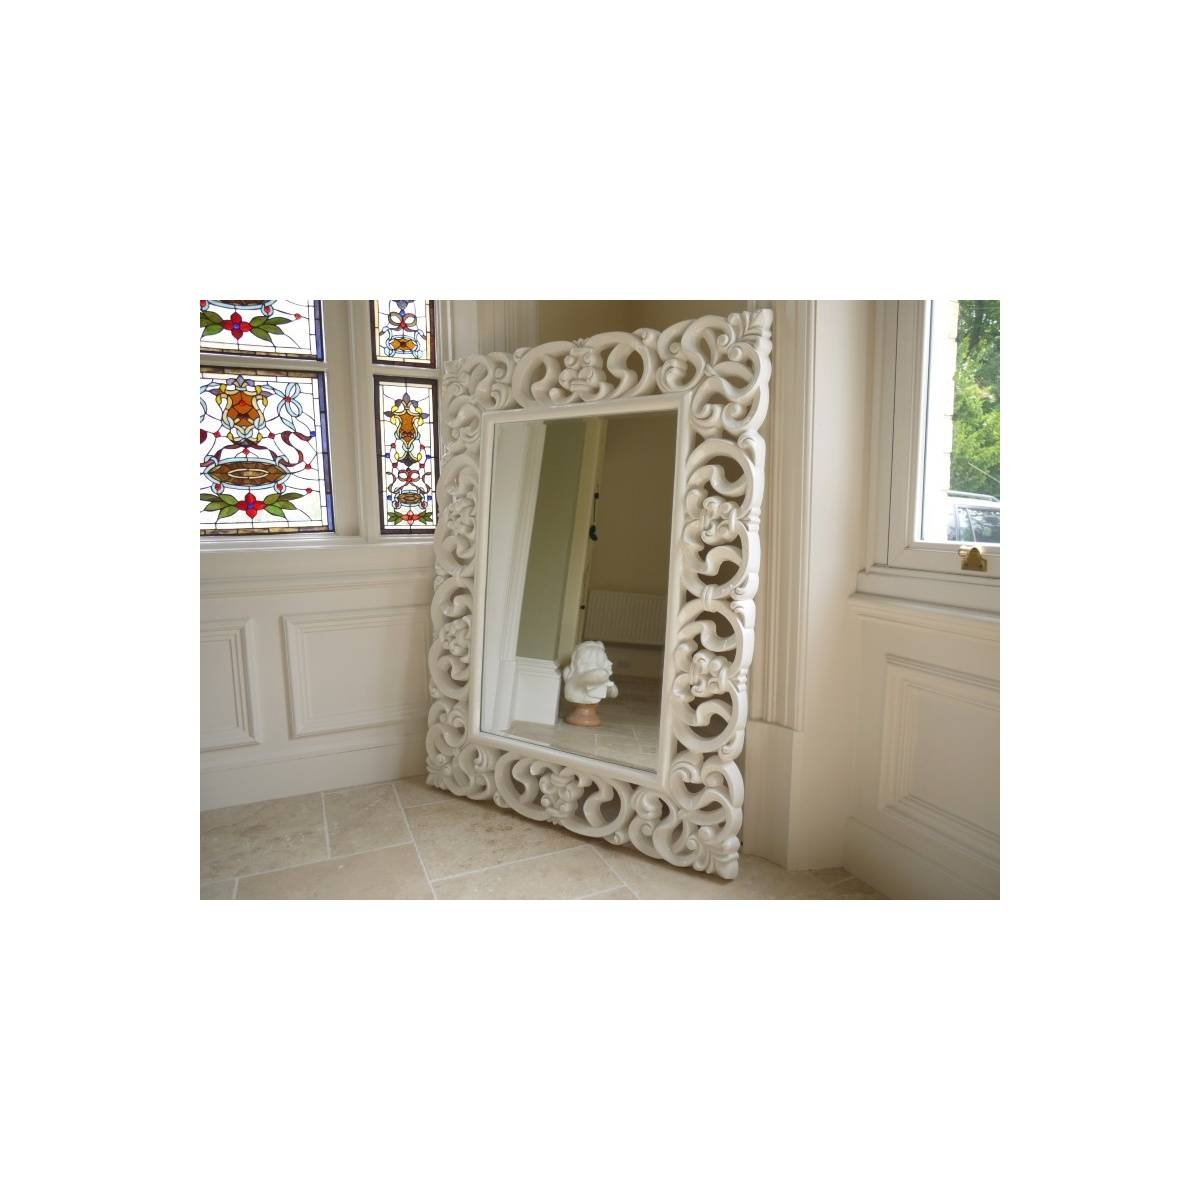 Buy Large French White Ornate Wall Mirror | Swanky Interiors for Large White Ornate Mirrors (Image 4 of 25)